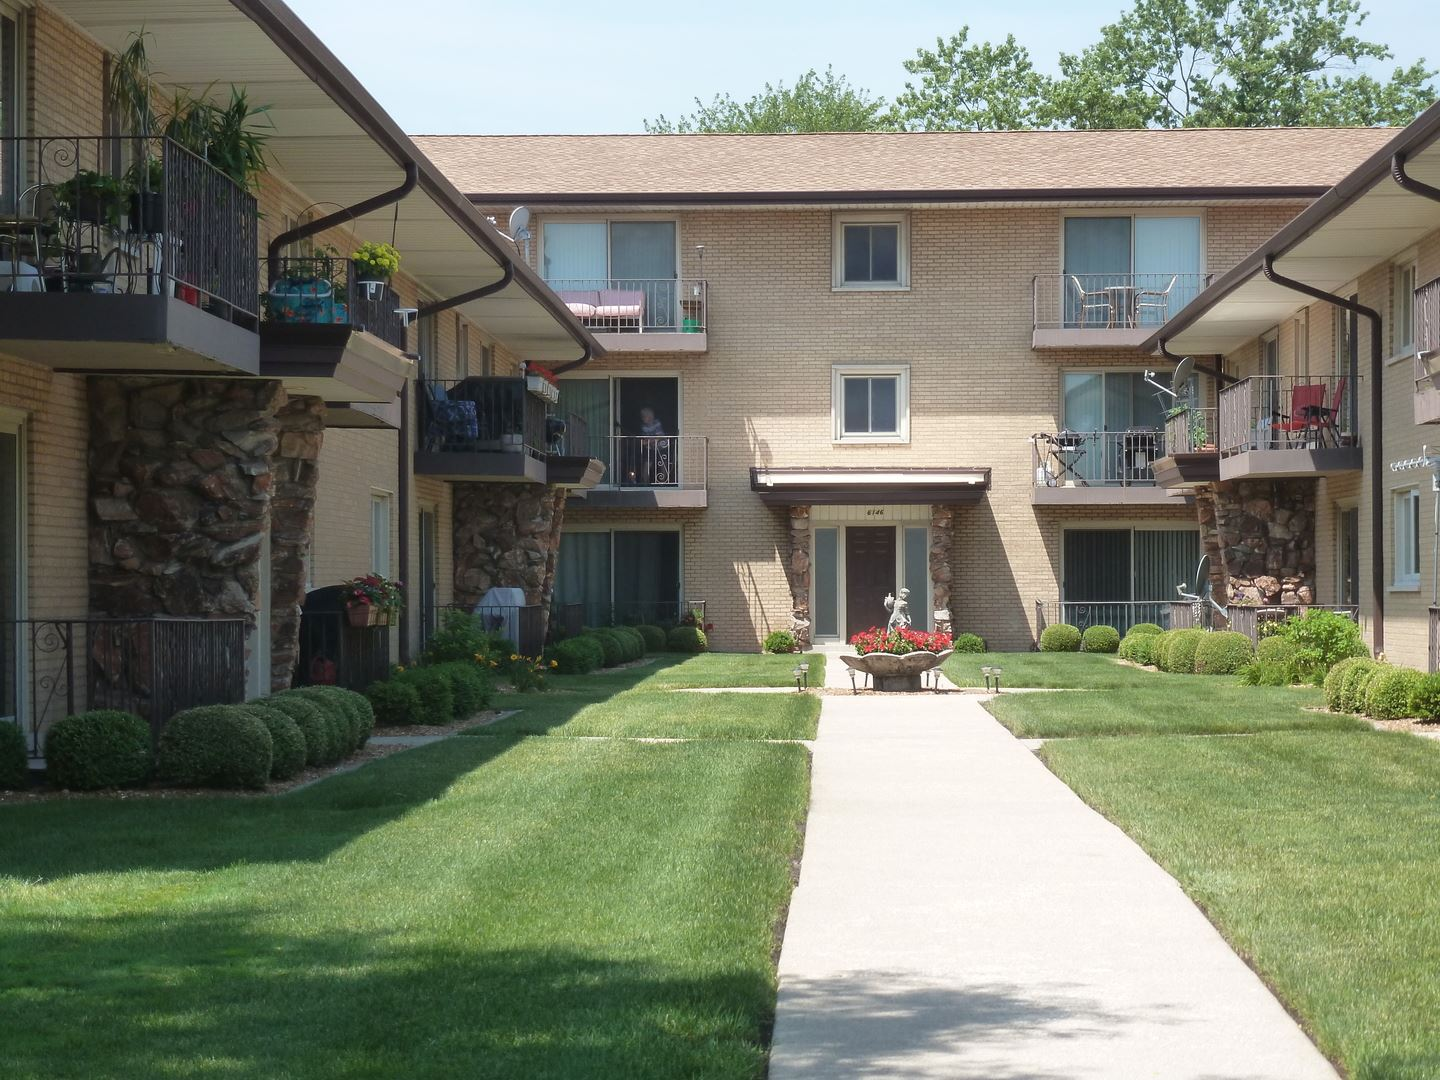 6148 S Kensington Avenue #204, Countryside, IL 60525 - #: 10786674